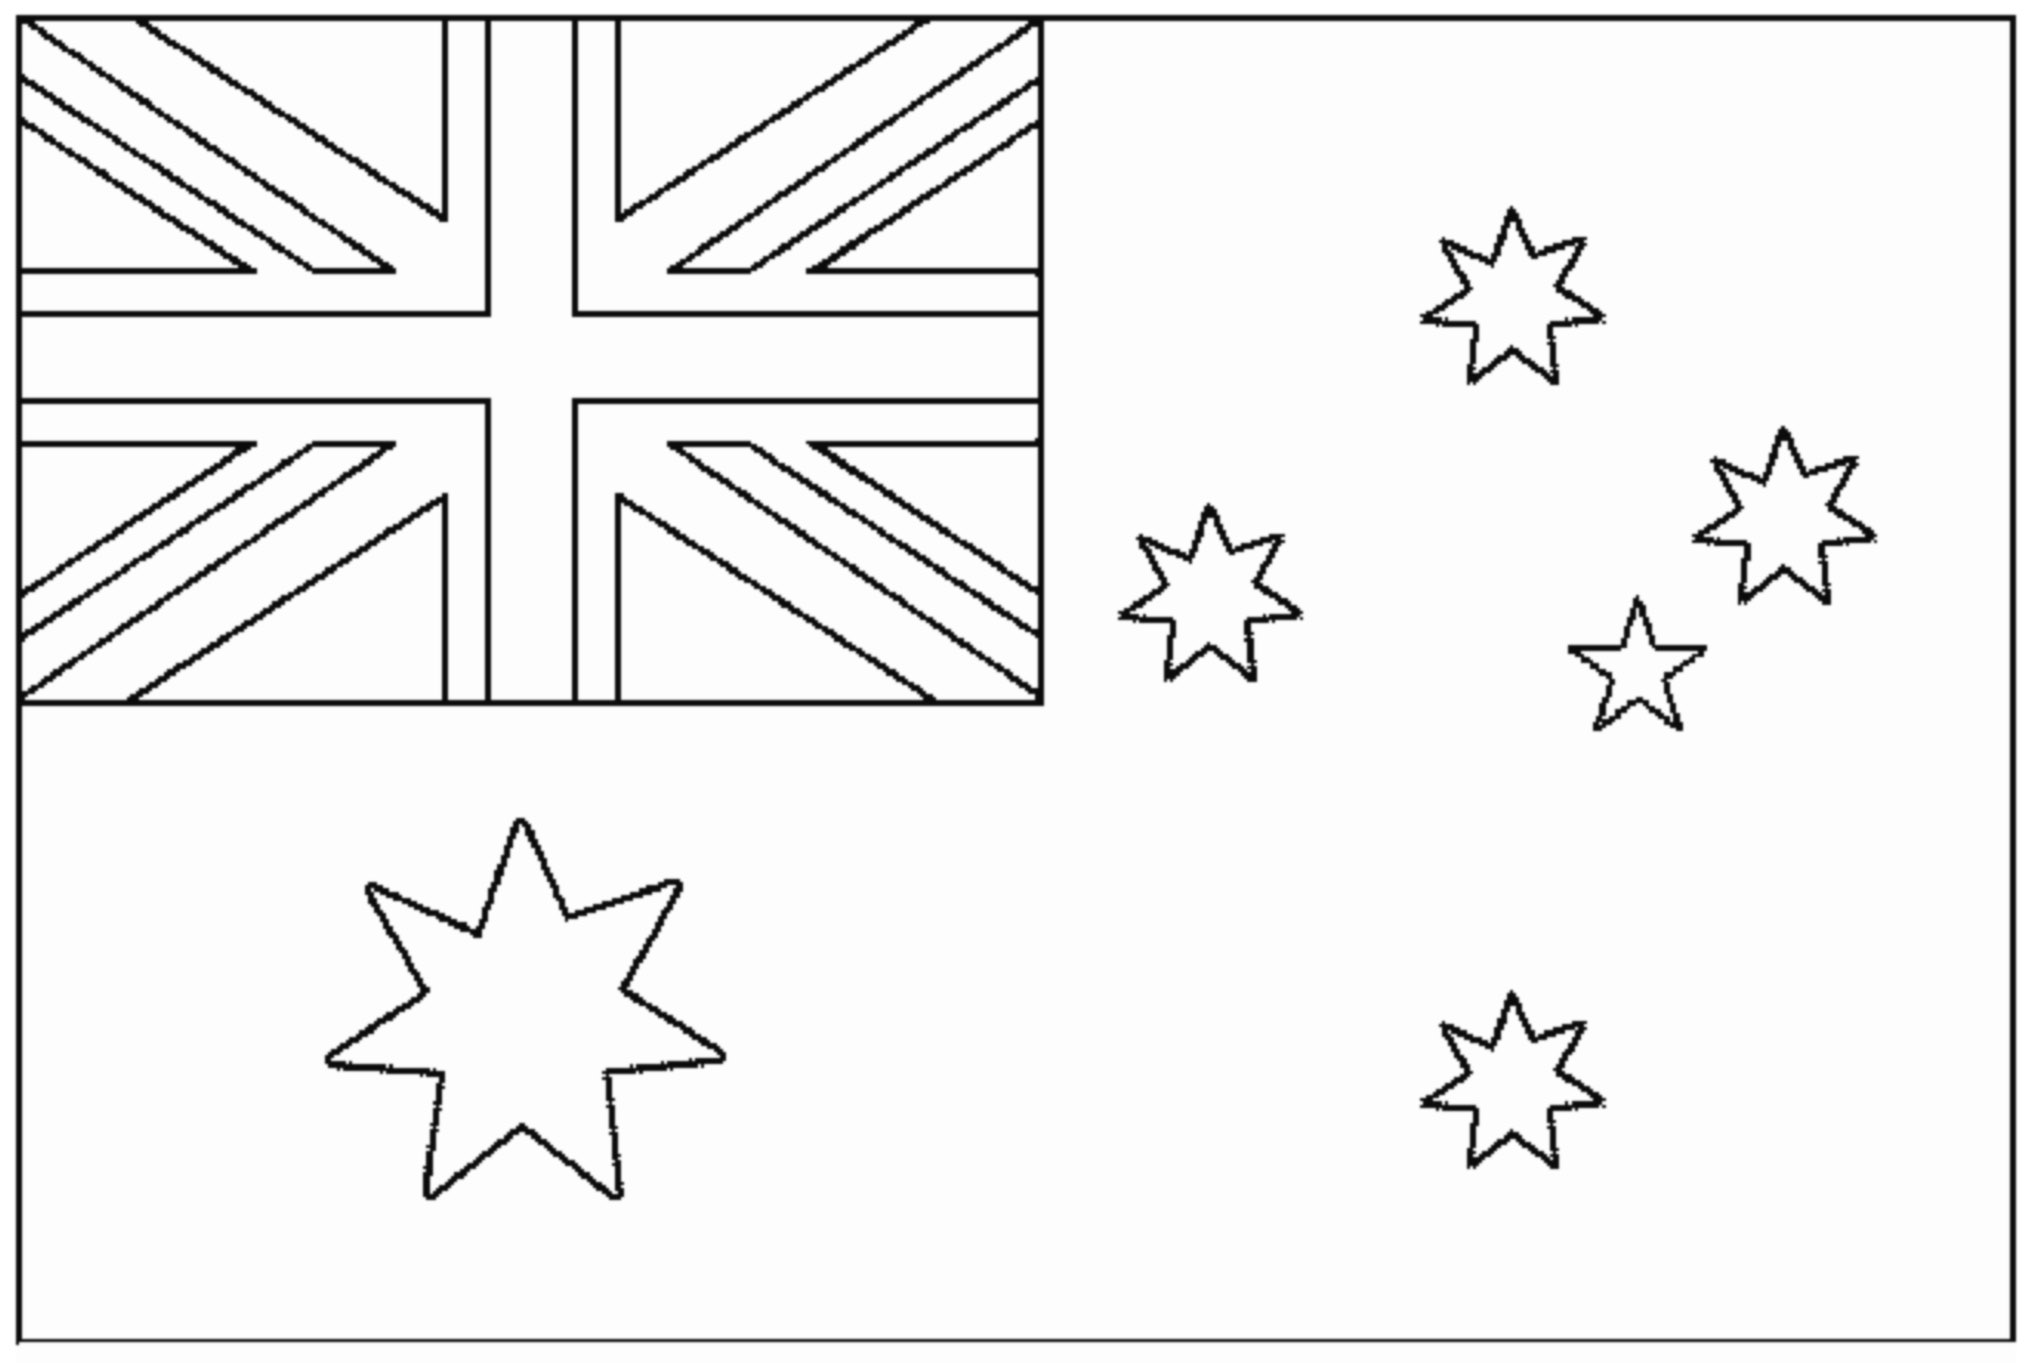 australian flag coloring pages Flag australia   Flags Coloring pages for kids to print & color australian flag coloring pages